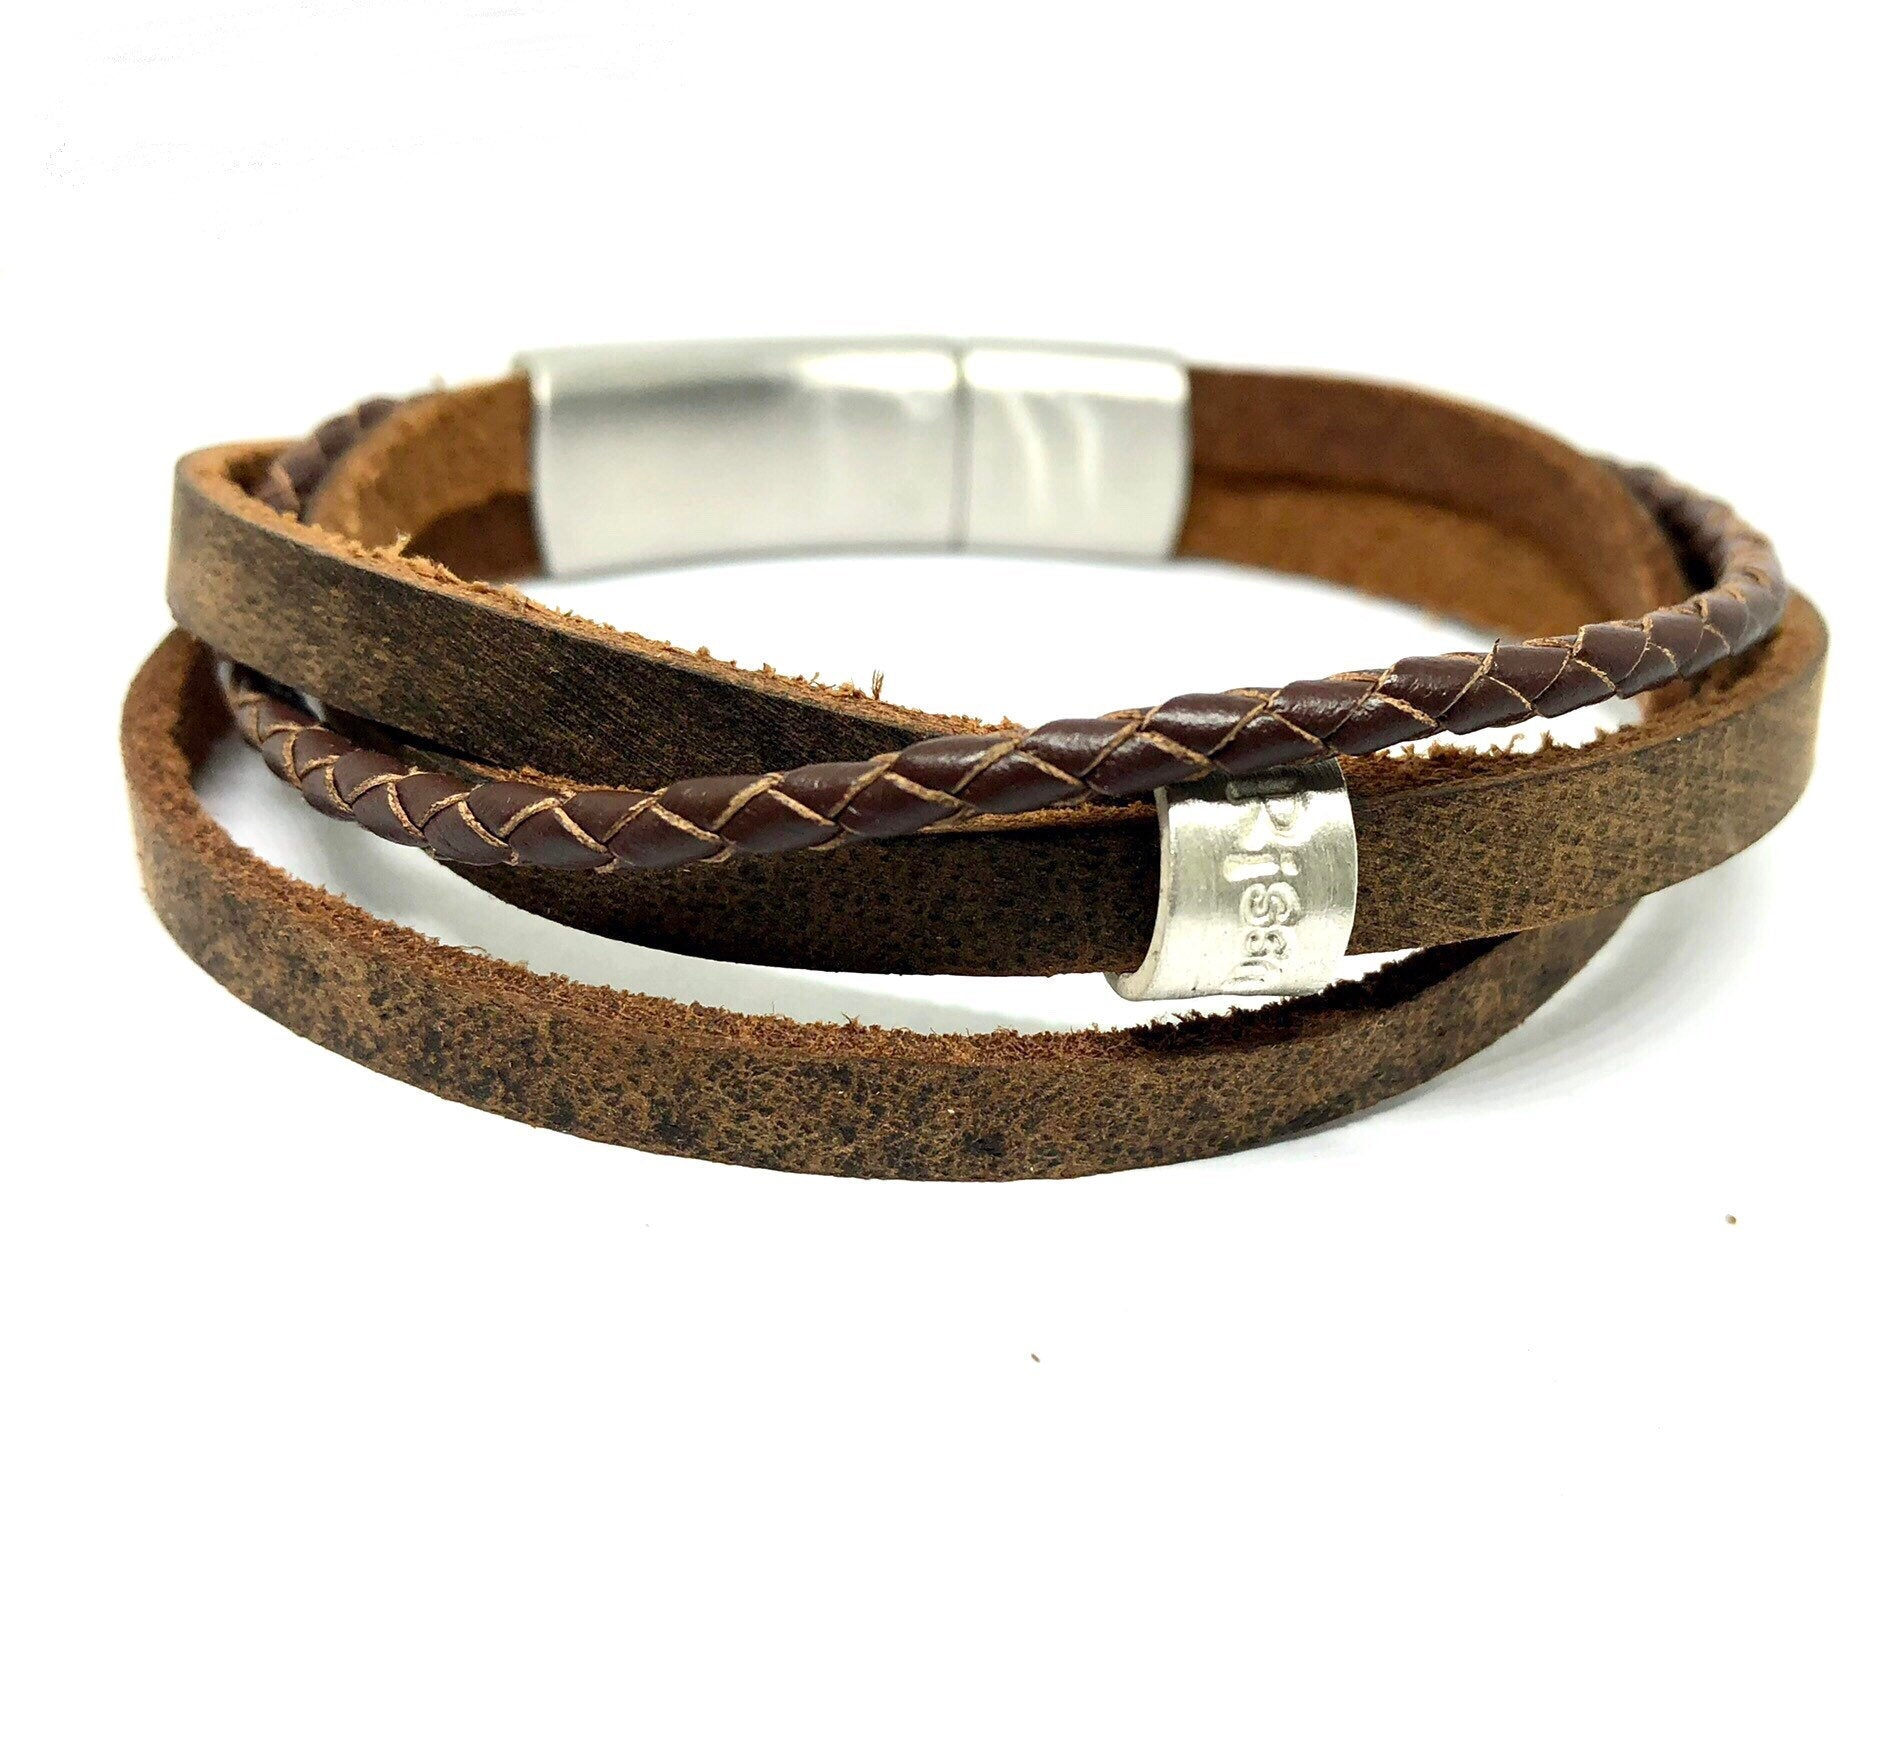 Mens Wrap Bracelet Leather Wrap Bracelet Mens bracelet Boho Bracelet Gift For Men Fathers day Gift Personalised leather Bracelet